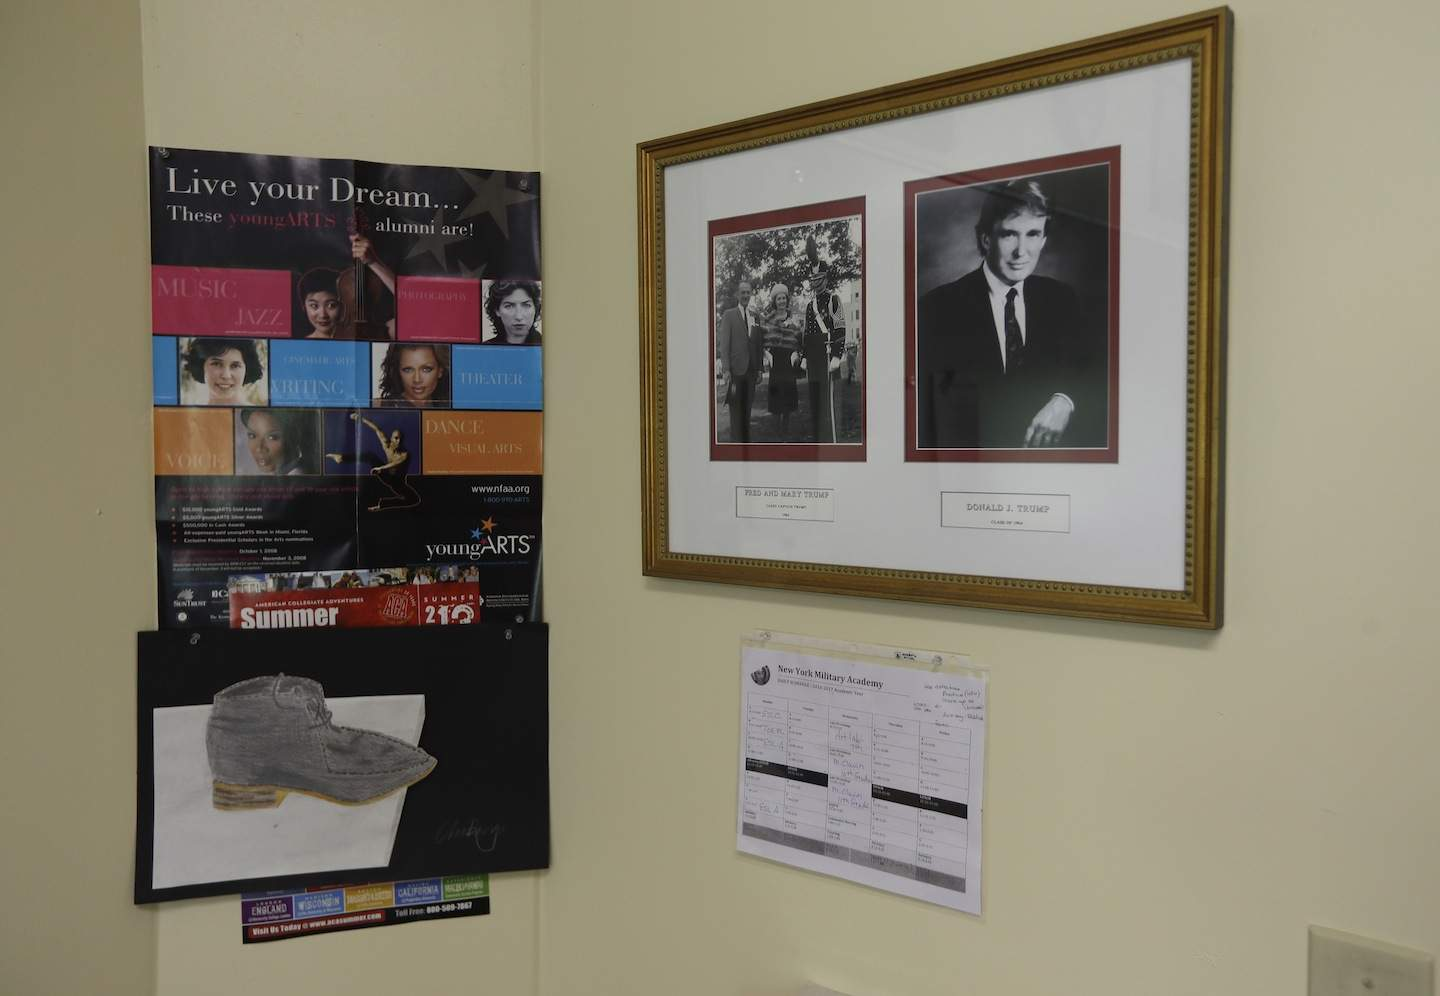 In this Thursday, Sept. 8, 2016 photo, photos of Donald Trump, right, and Trump with his parents, hang on a classroom wall at the New York Military Academy, in Cornwall-on-Hudson, N.Y. Trump talks tough about dealing with China, but his alma mater is looking to Asia to survive. The school has reopened after a rough patch with new Chinese owners and a new superintendent who emigrated from China before making her mark in the New York City school system. (AP Photo/Mike Groll)